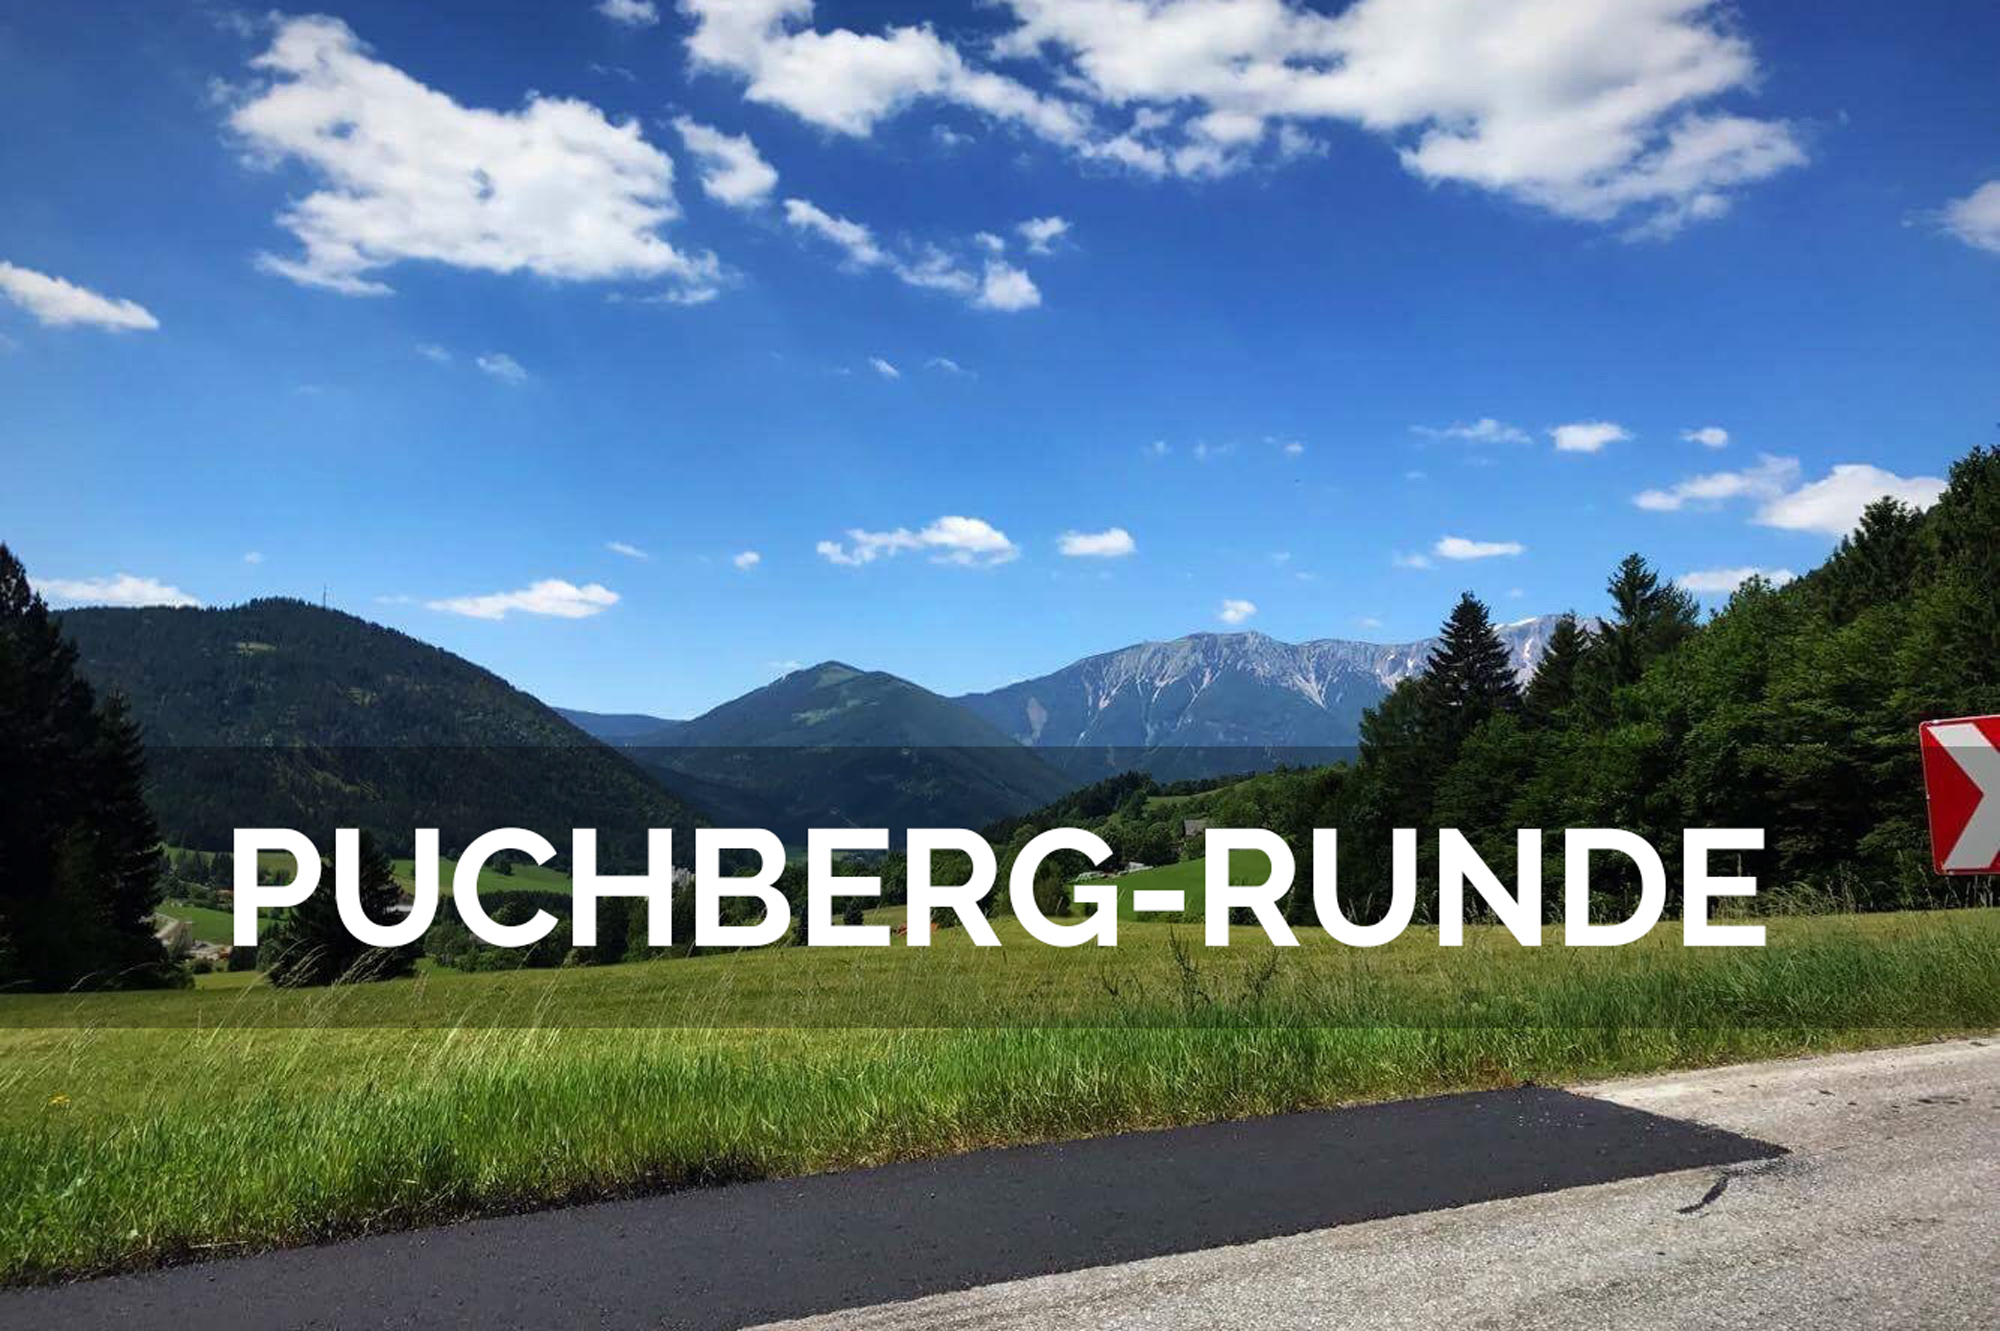 Puchberg,Ascher, Neusiedl, Rennrad, MitziandFriends, Radrunde, Route, Rennradblog, Radblog, Tini und Andy, One girl, One boy, One passion, Rennradblog, Radblog, Geradeaus, Trikoterie, Cycling, Blog, Austria, IgersAustria, Blogging, Tini, Andy, Passion, Sport, Roadcycling, geradeaus.at